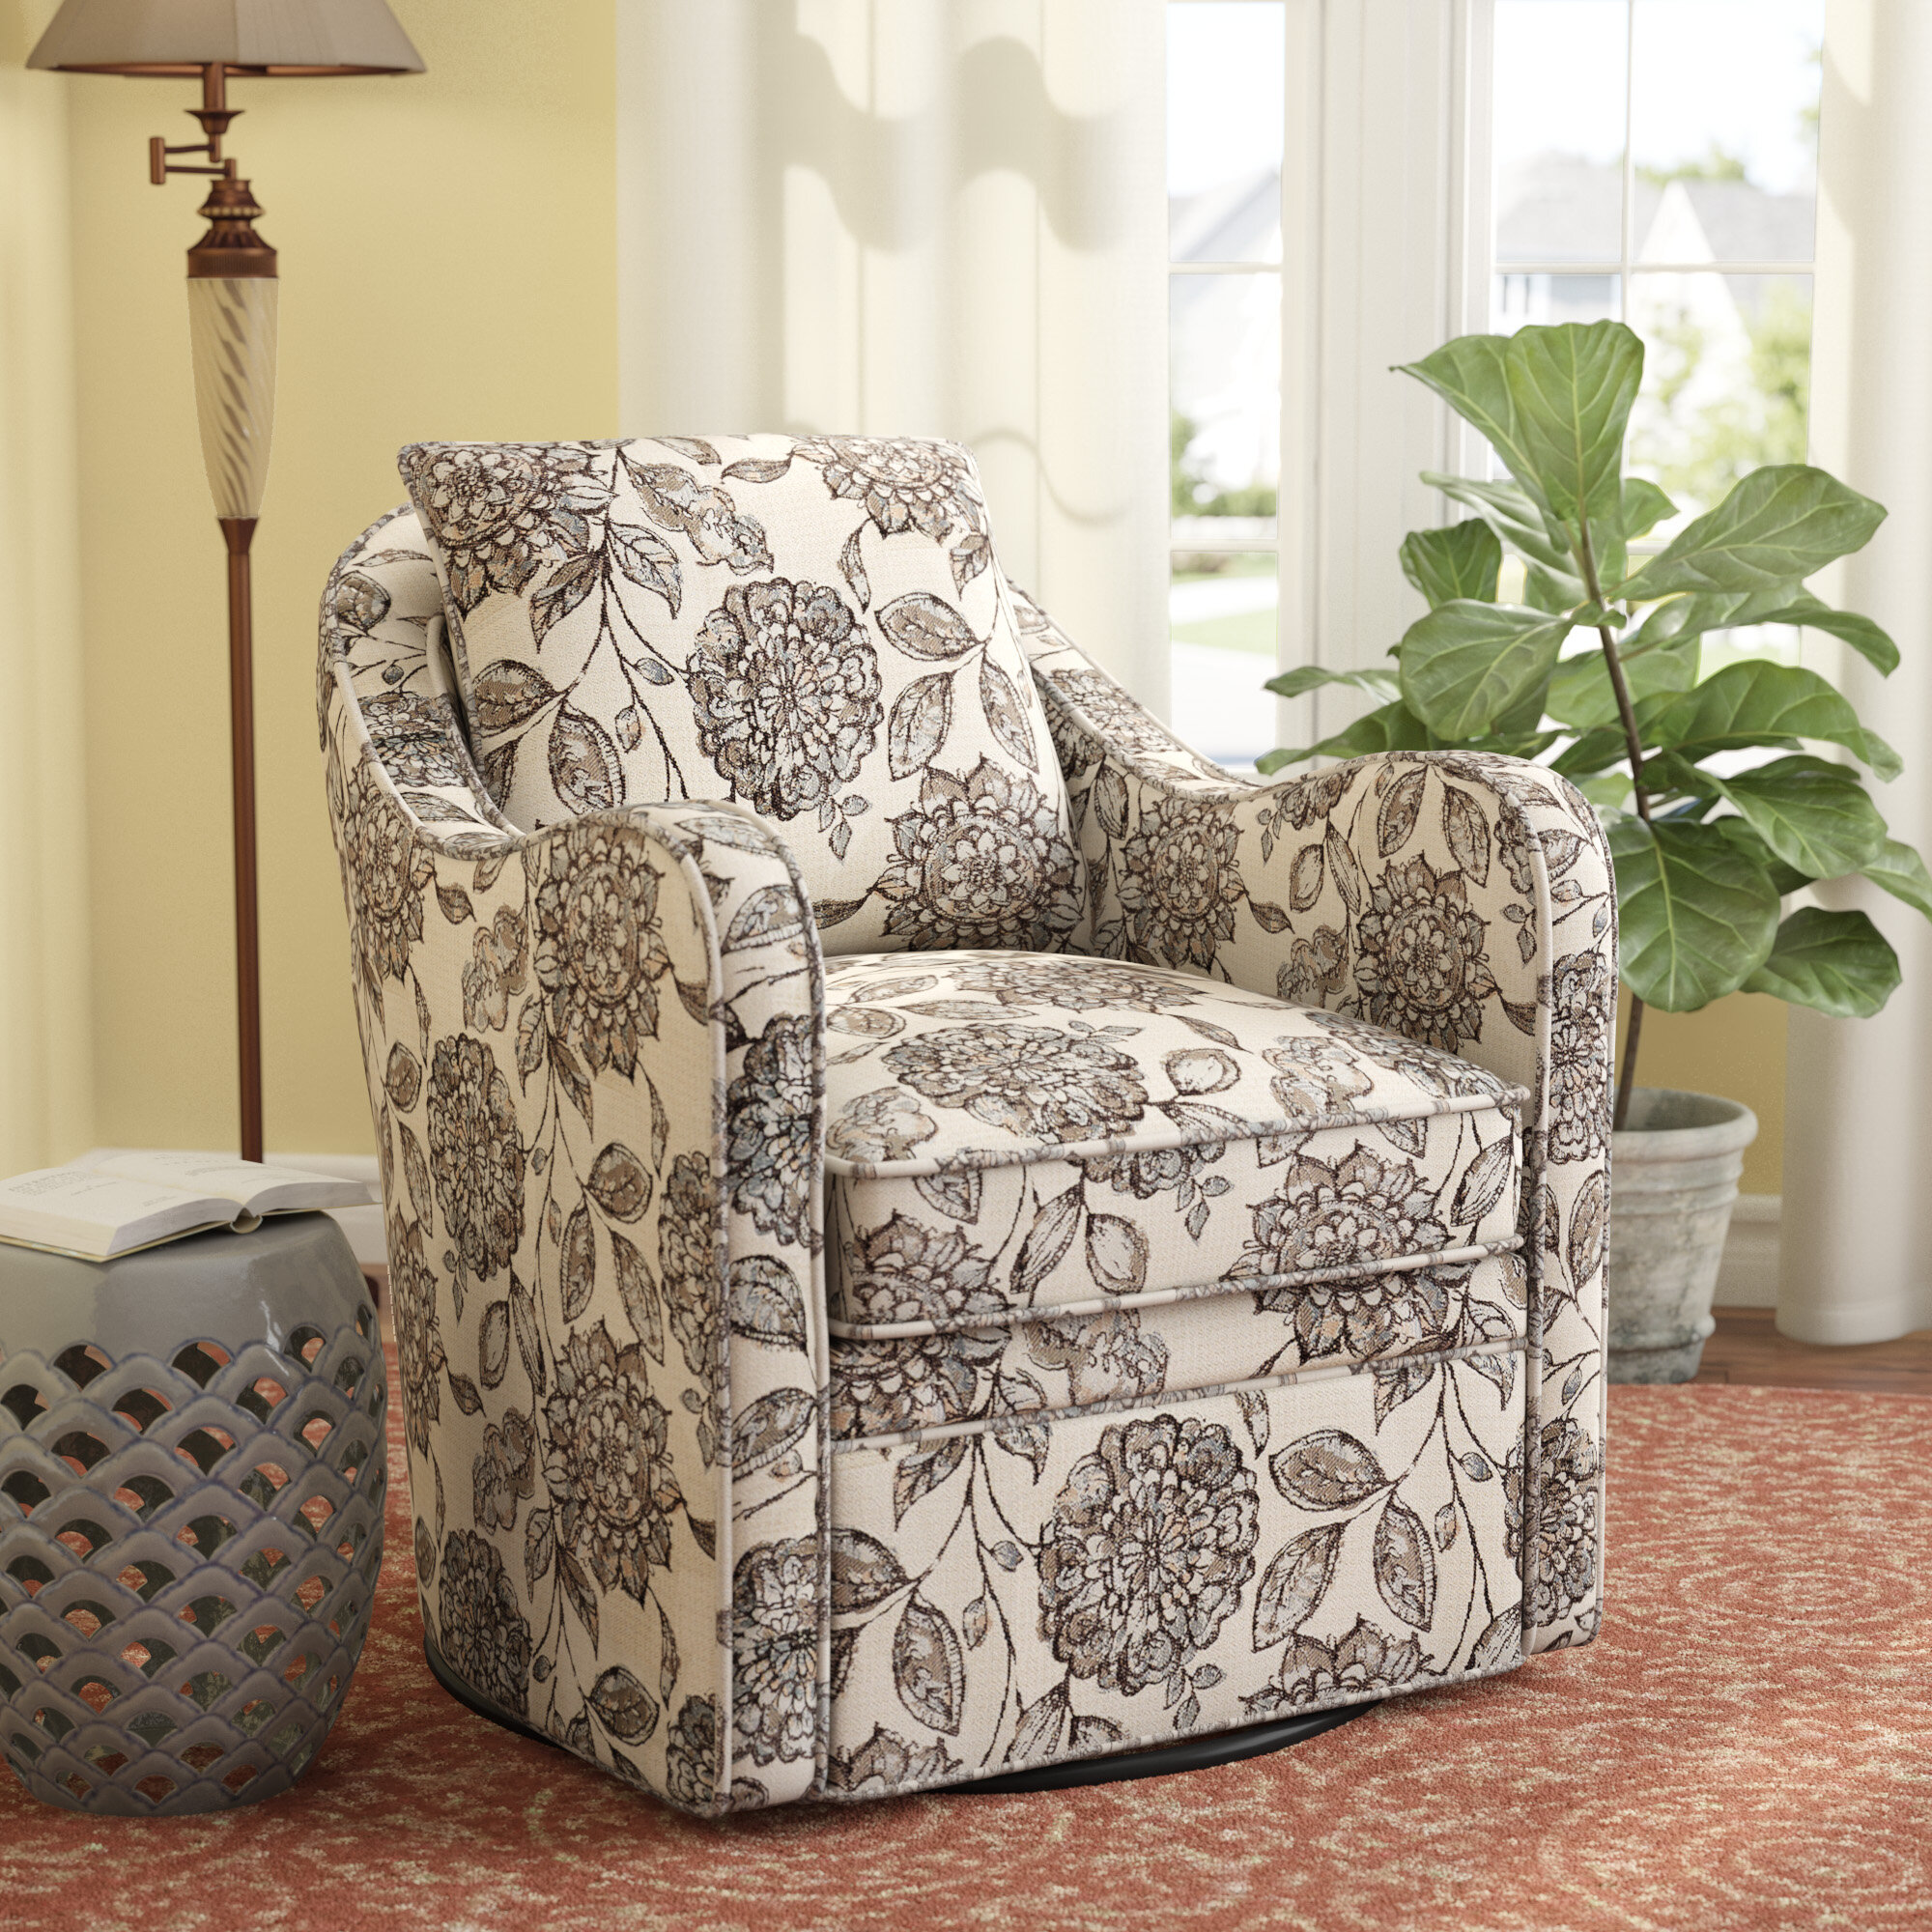 Alcott hill brick and barrel swivel armchair reviews wayfair